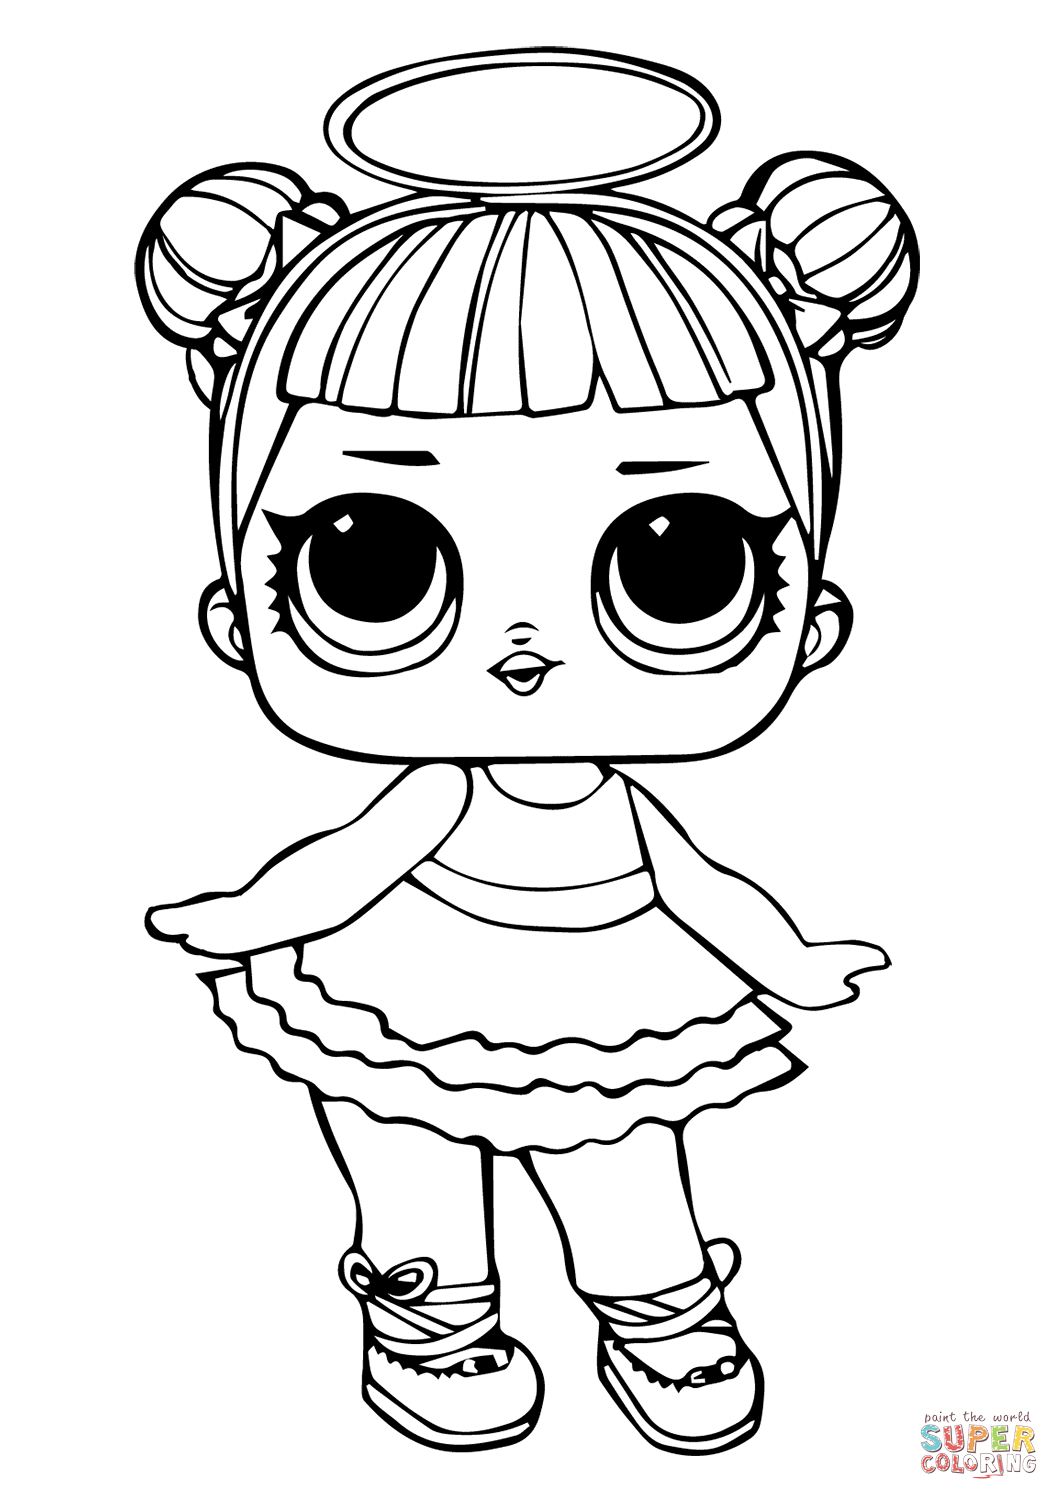 Lol Doll Sugar Super Coloring Super Coloring Pages Cartoon Coloring Pages Kids Printable Coloring Pages